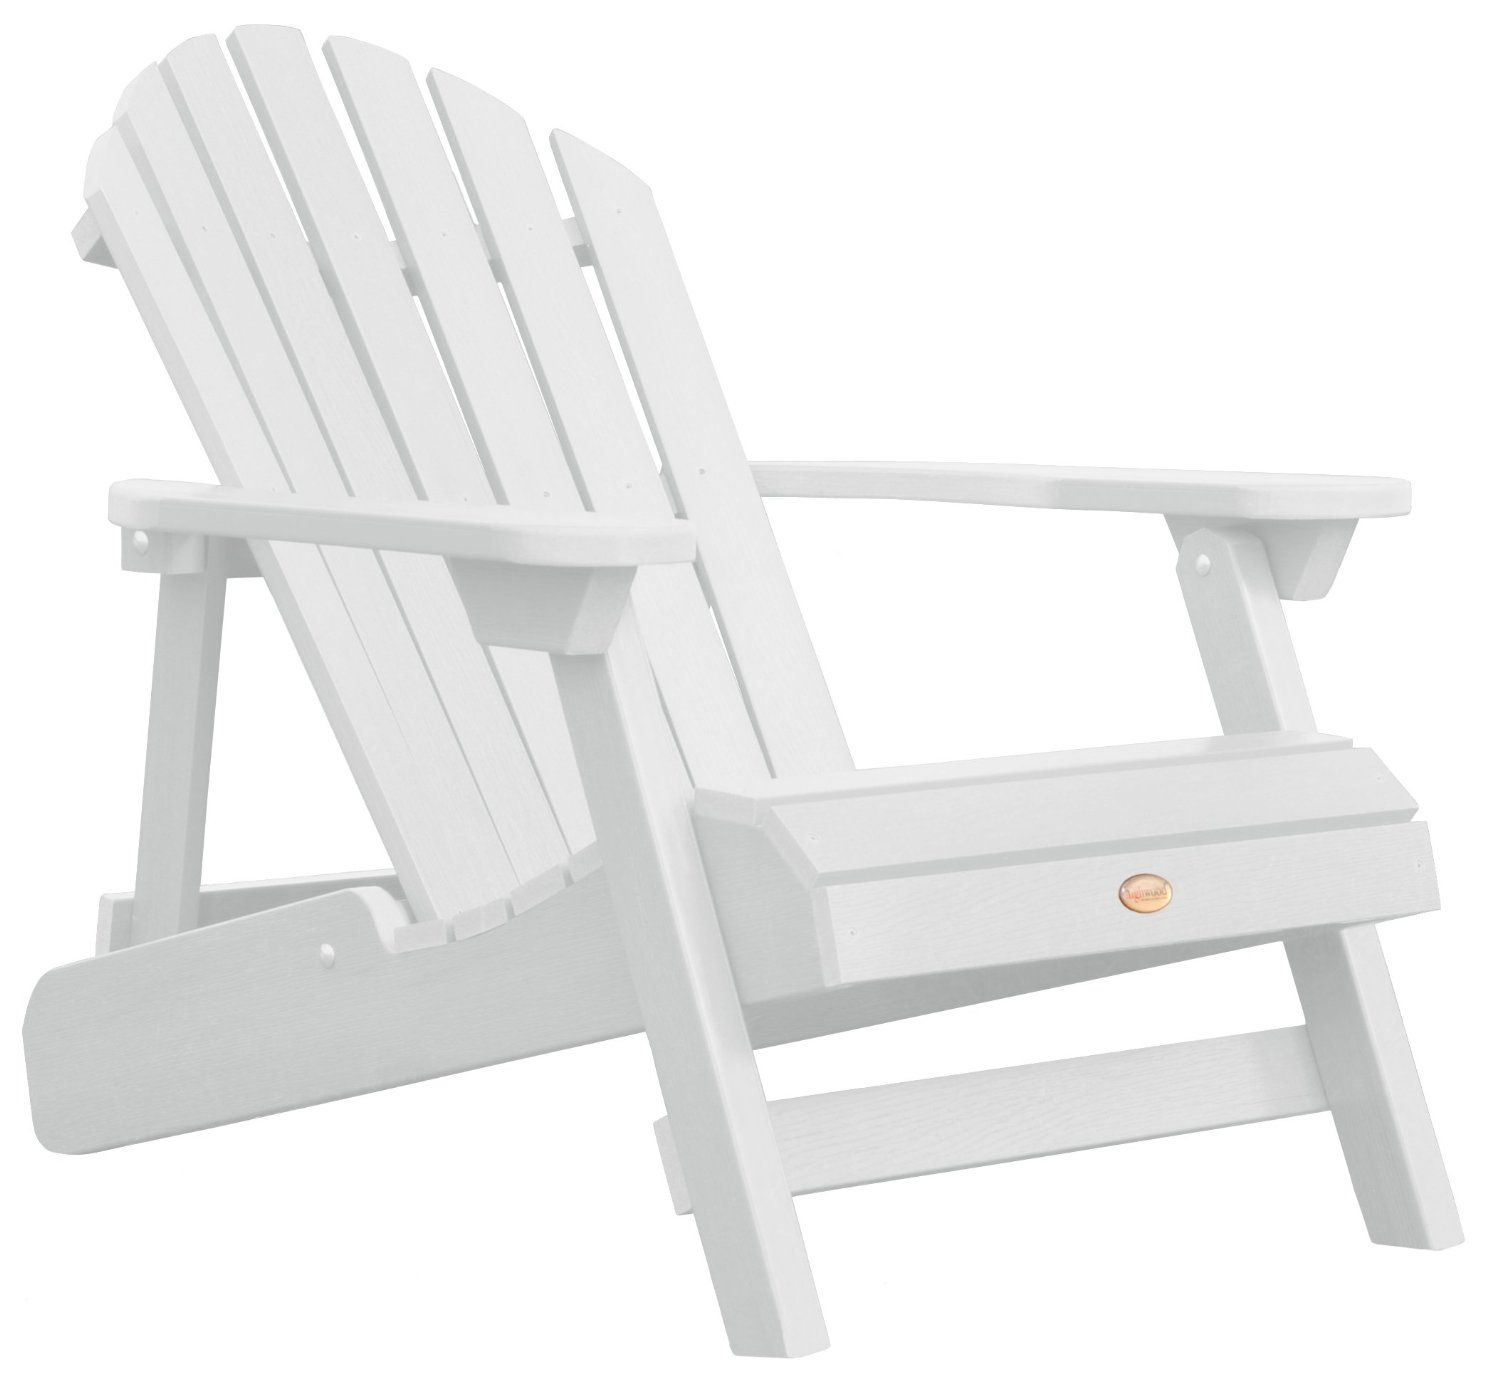 Sillas Plegables Amazon Highwood Adirondack Butaca Reclinable Y Plegable De Madera